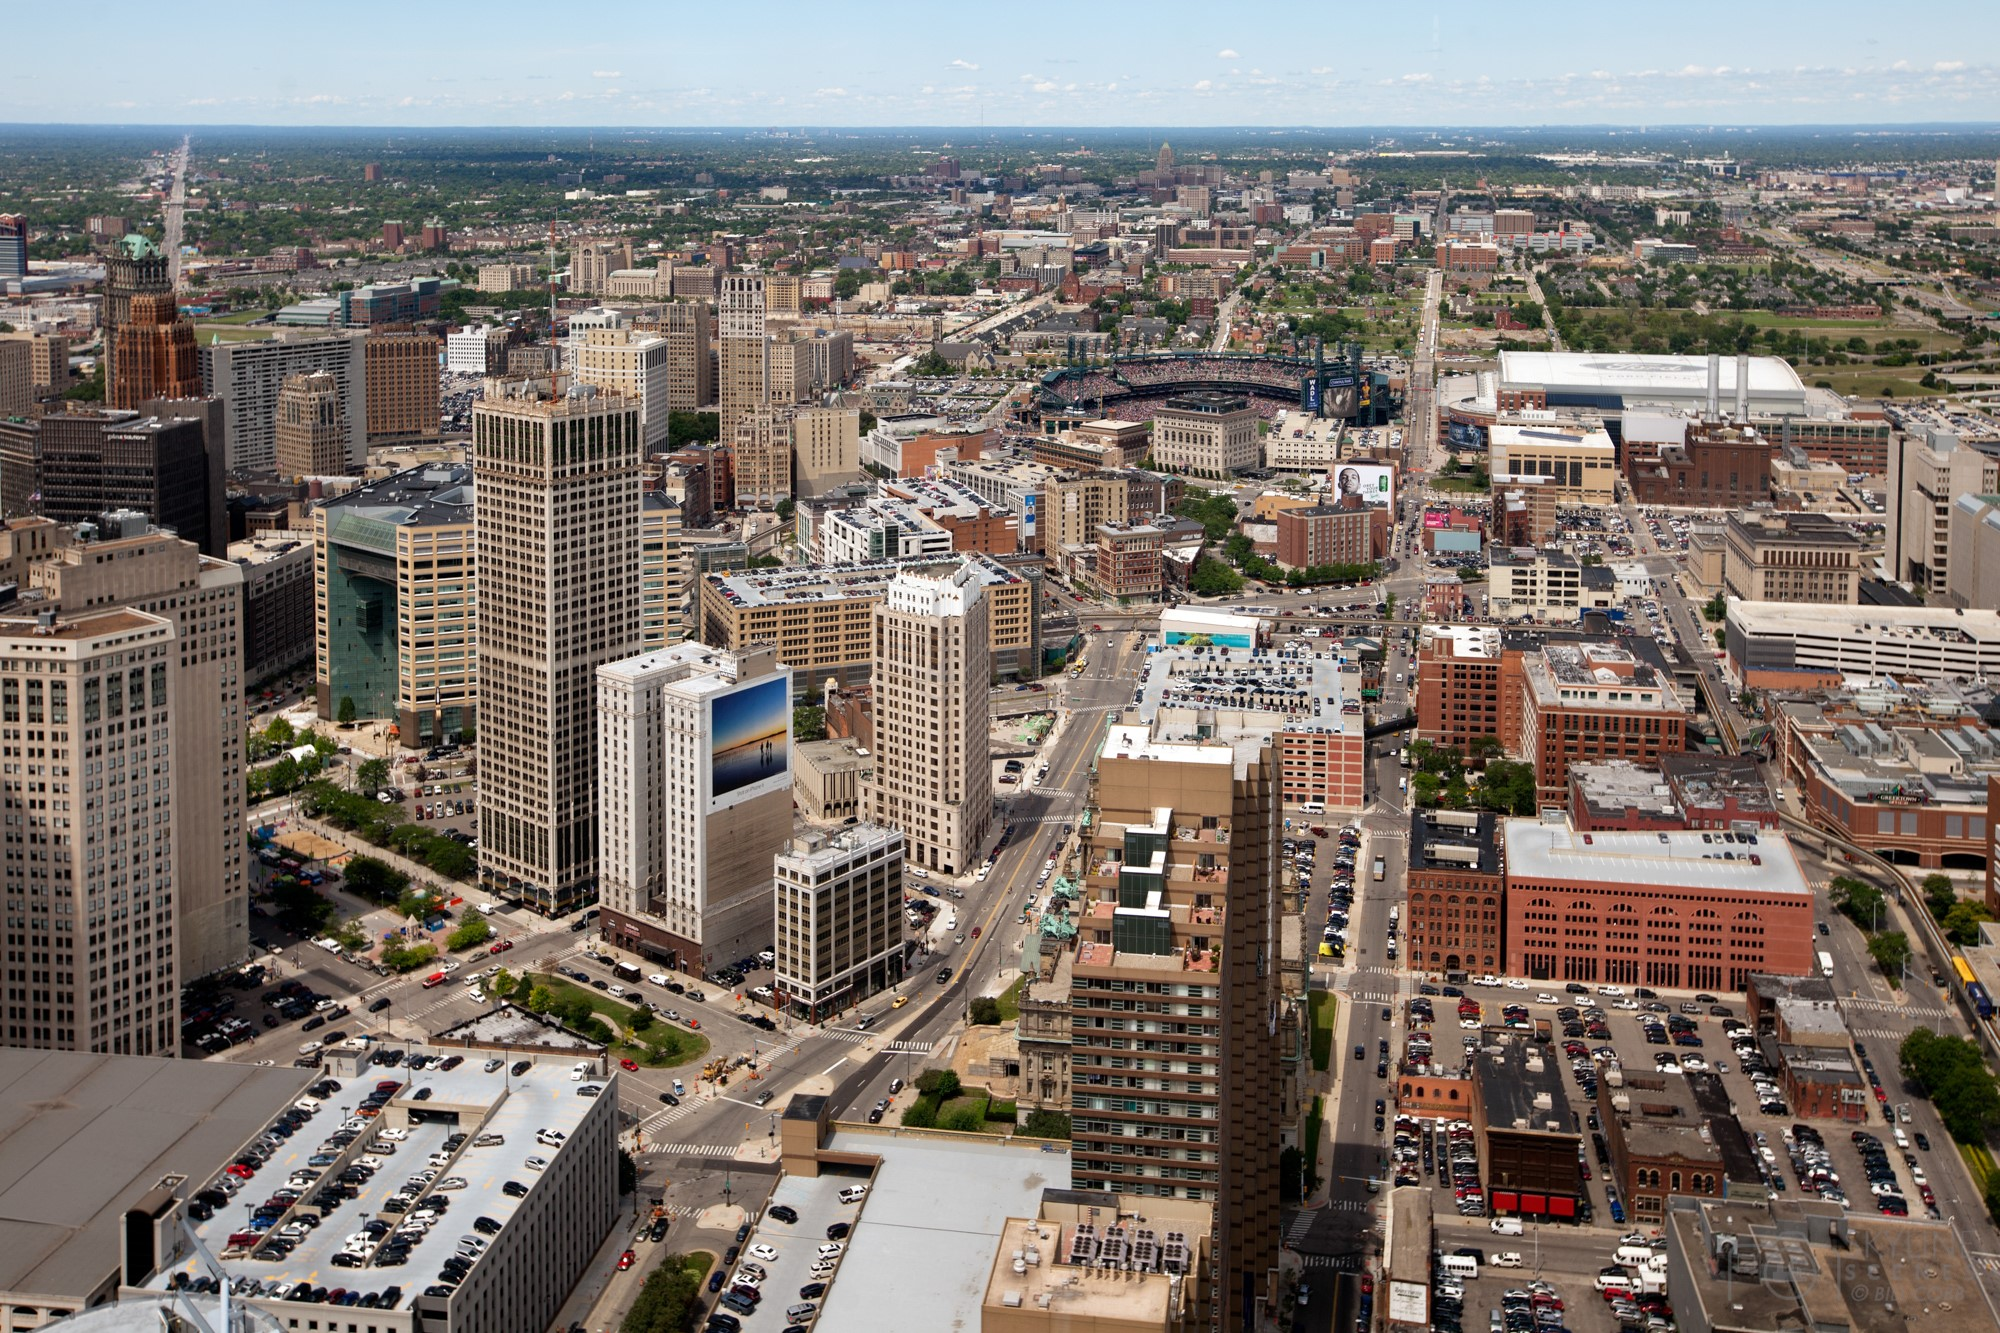 Aerial of Detroit, Michigan